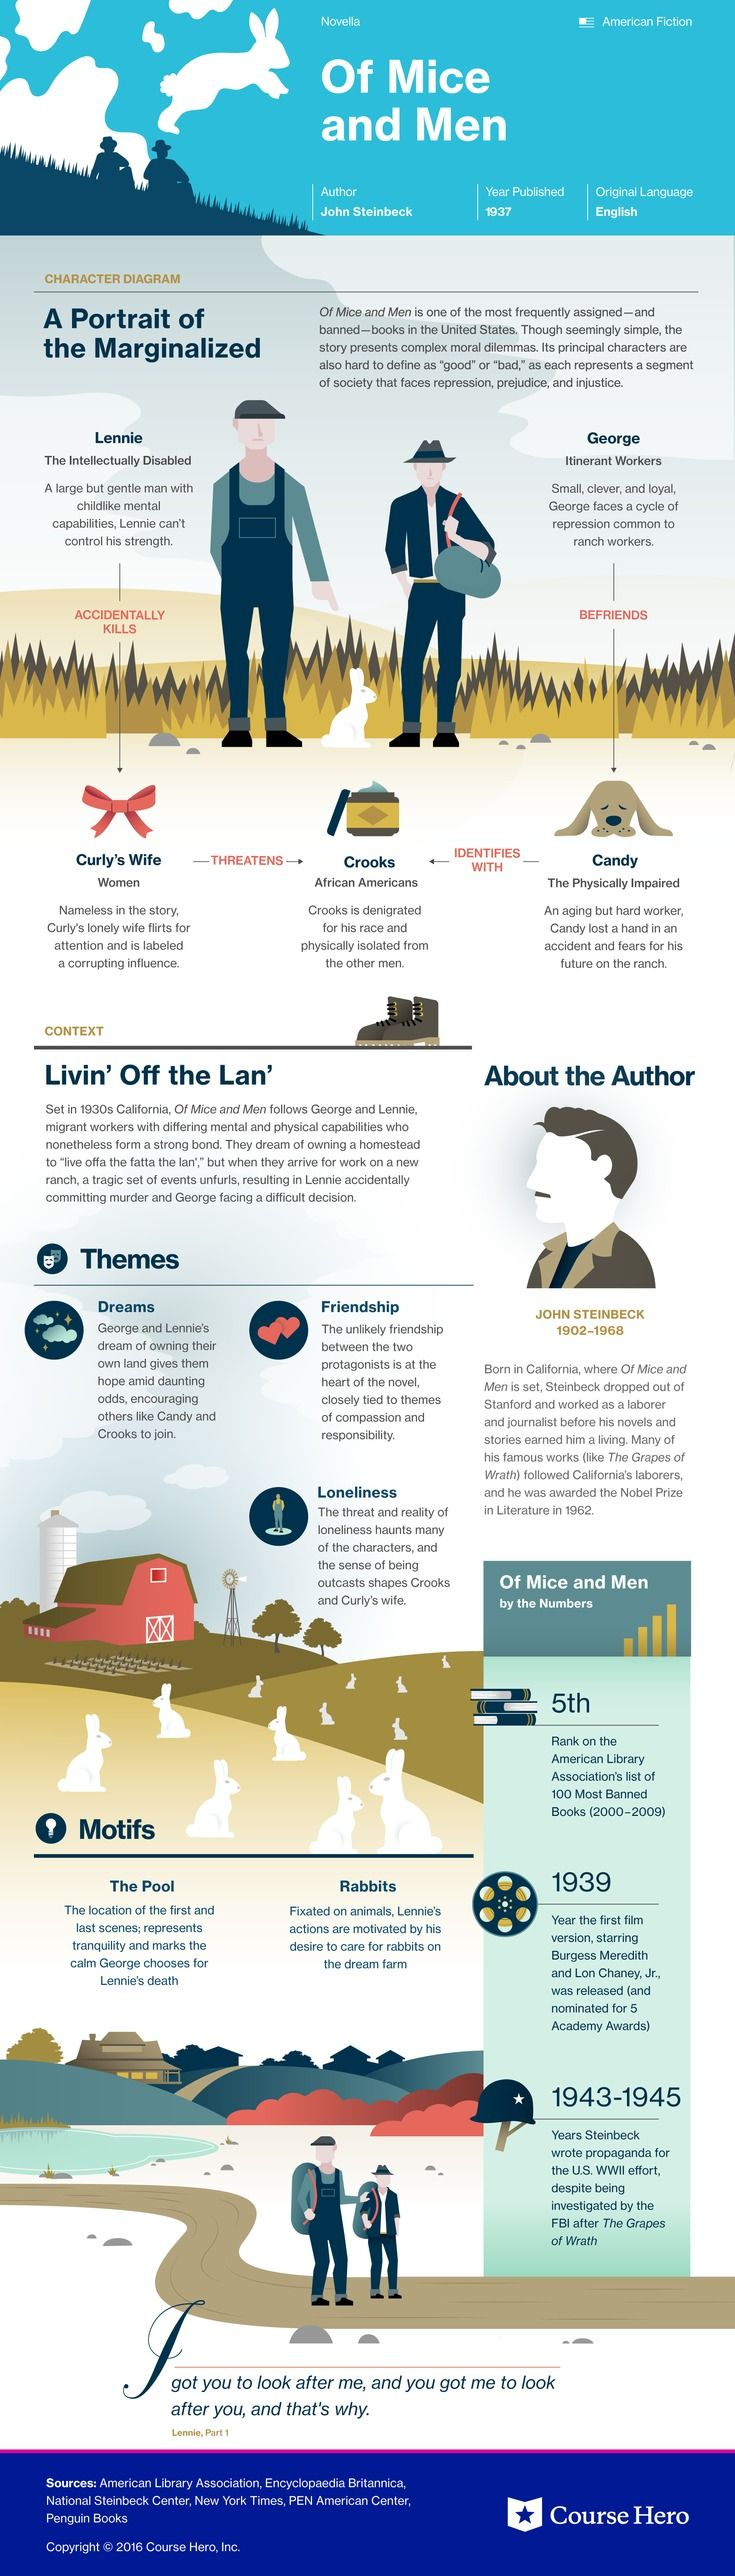 This @CourseHero infographic on Of Mice and Men is both visually stunning and informative!